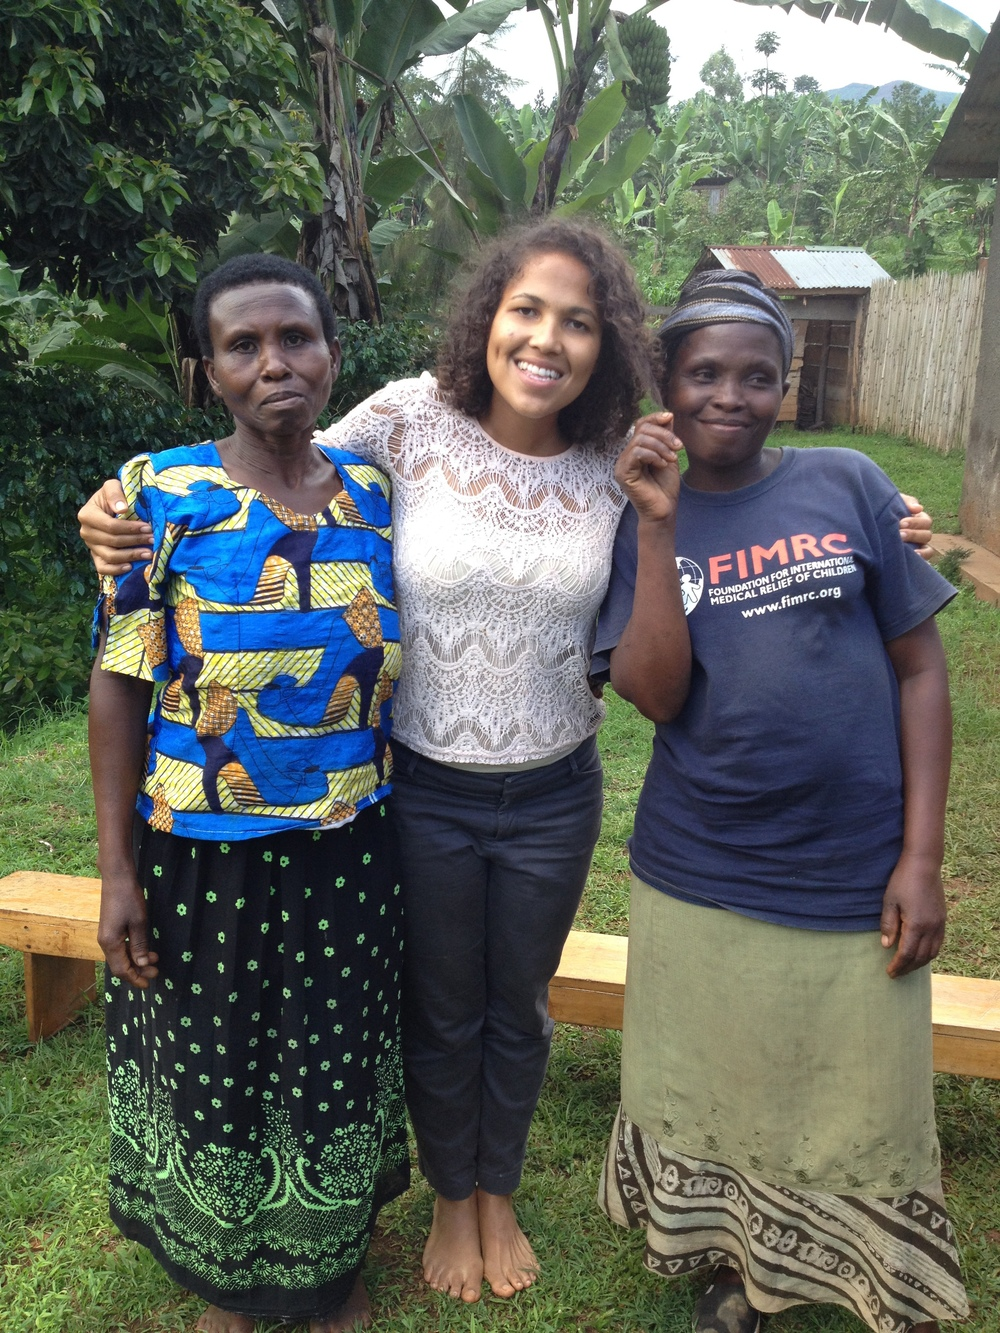 Amber with two of our superstar Community Health Educators (CHEs)!